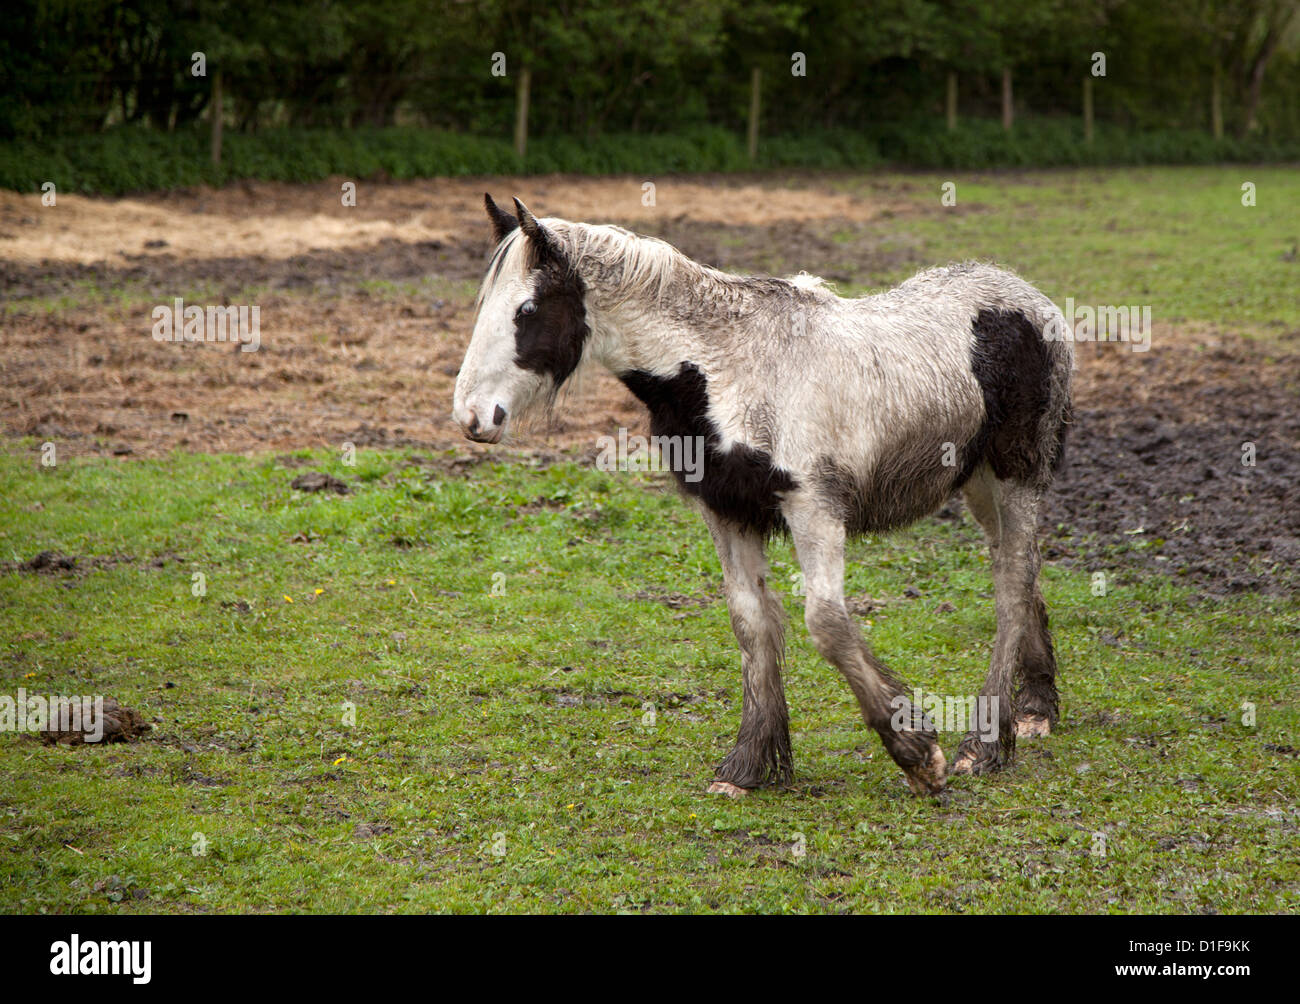 Wet ponies horses stood in a field - Stock Image